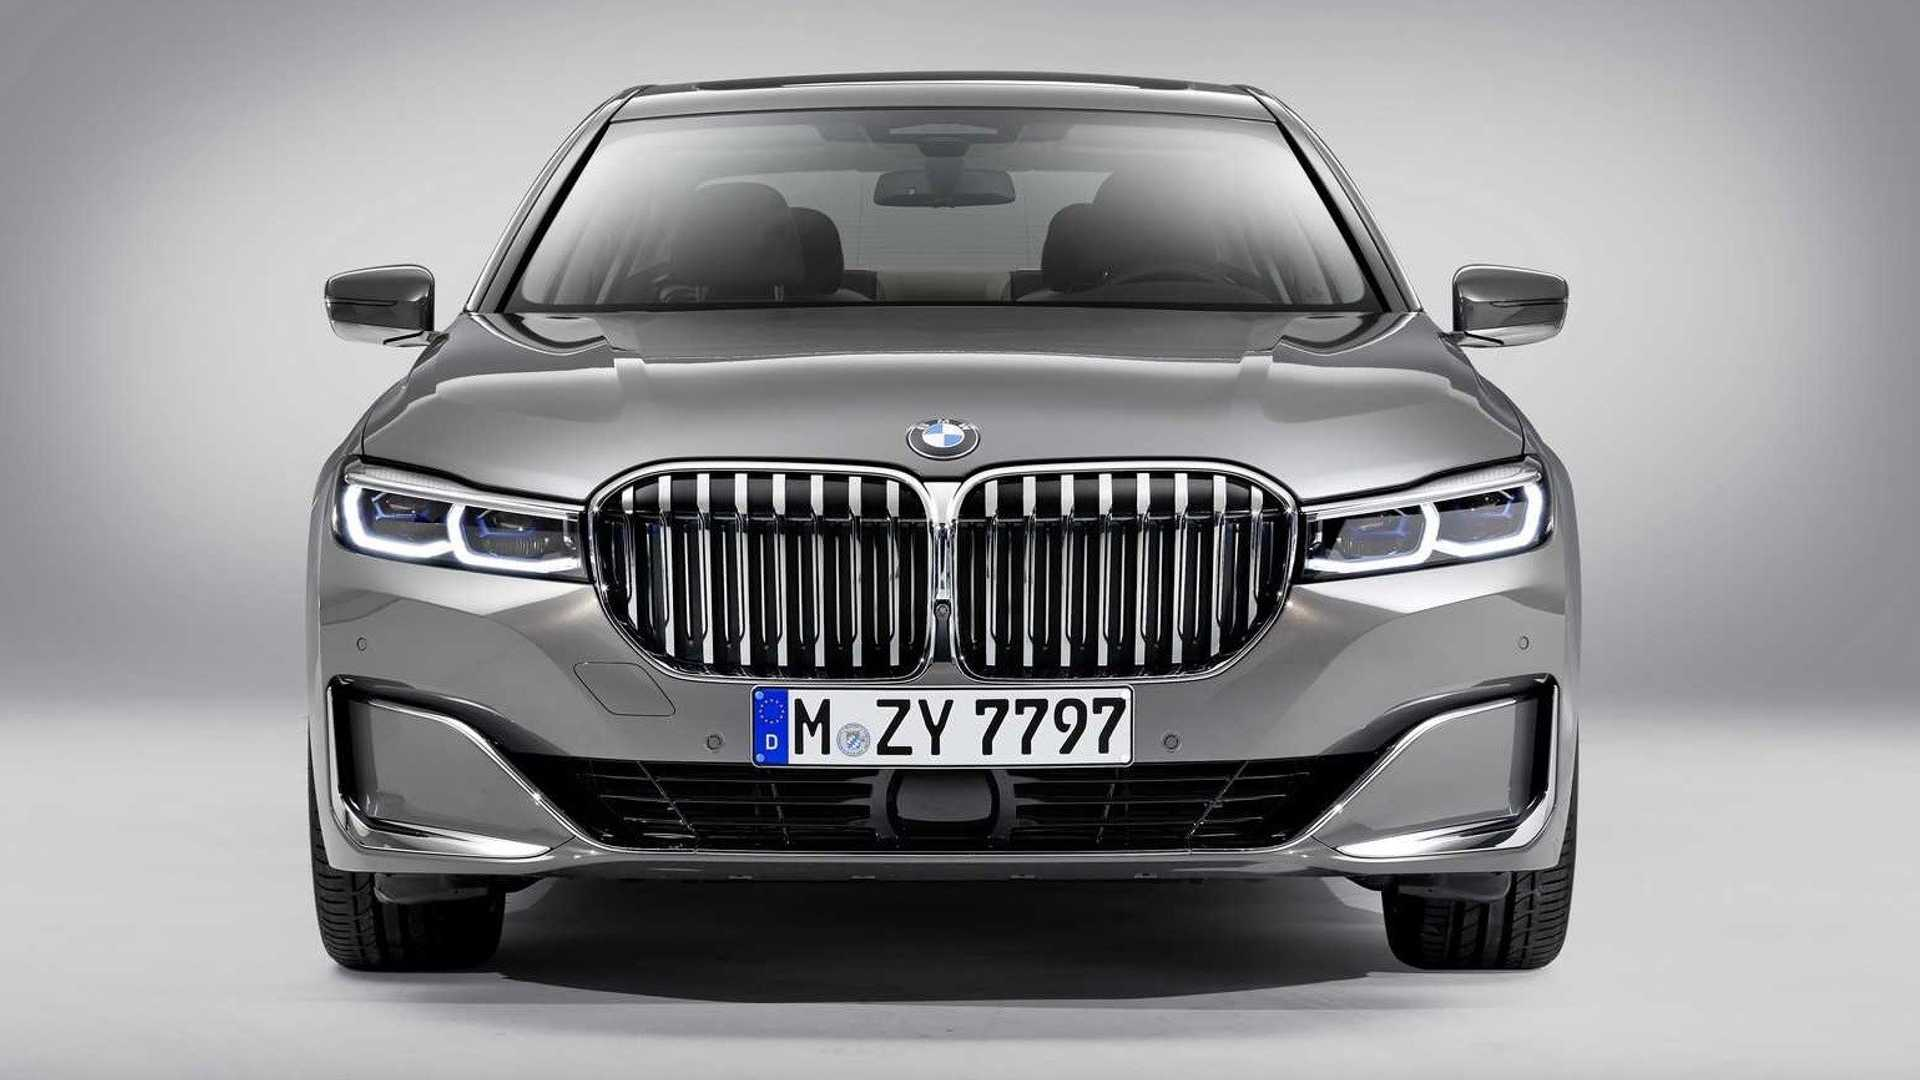 61 New Bmw News 2020 Ratings with Bmw News 2020